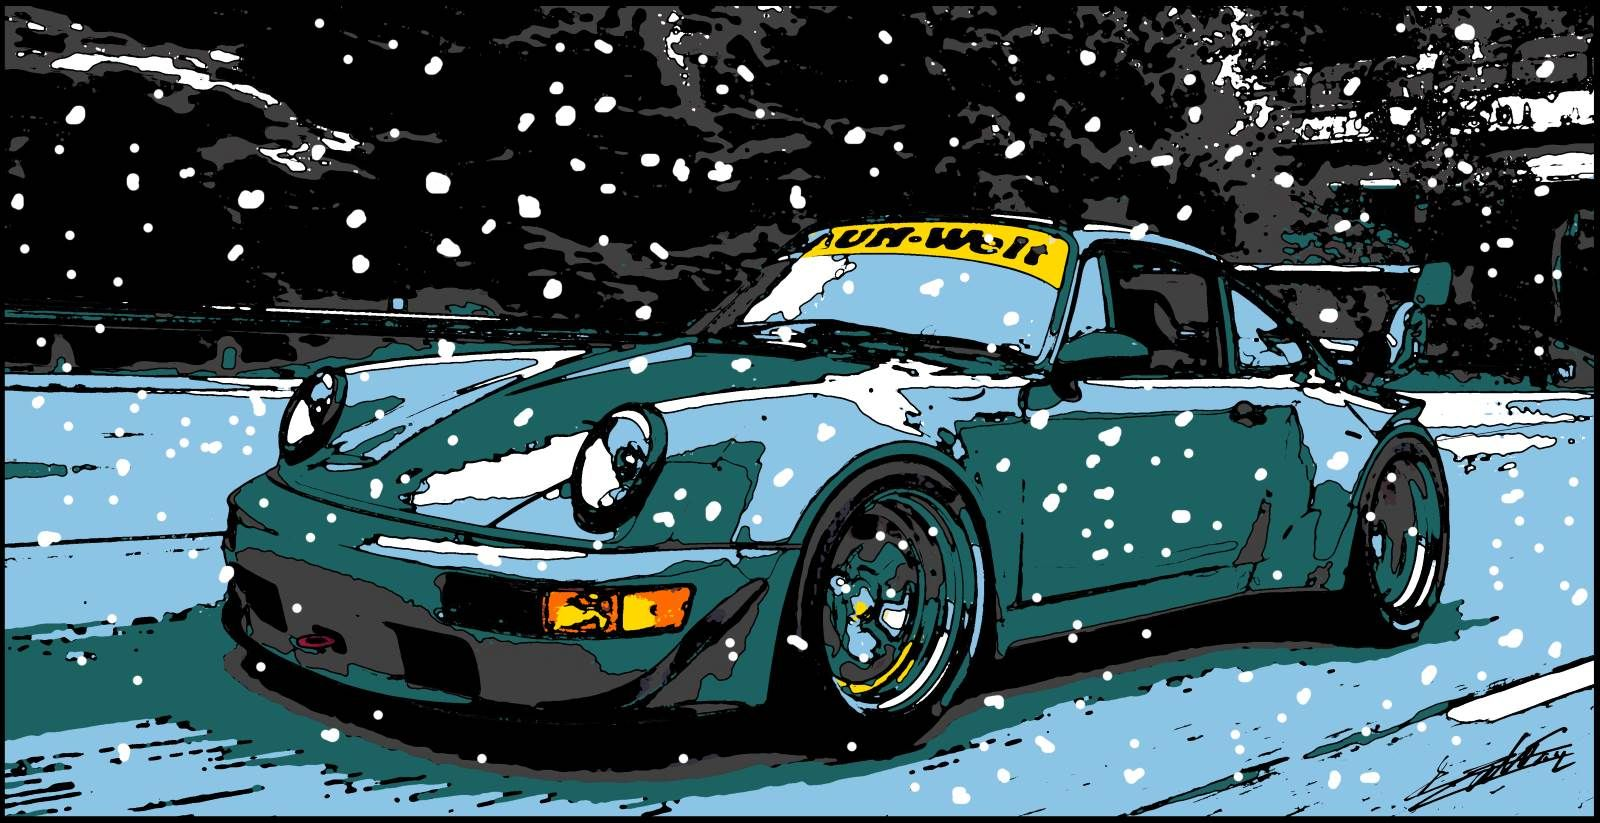 porsche peinture acrylique pop art voiture de sport course neige car art pinterest pop art. Black Bedroom Furniture Sets. Home Design Ideas